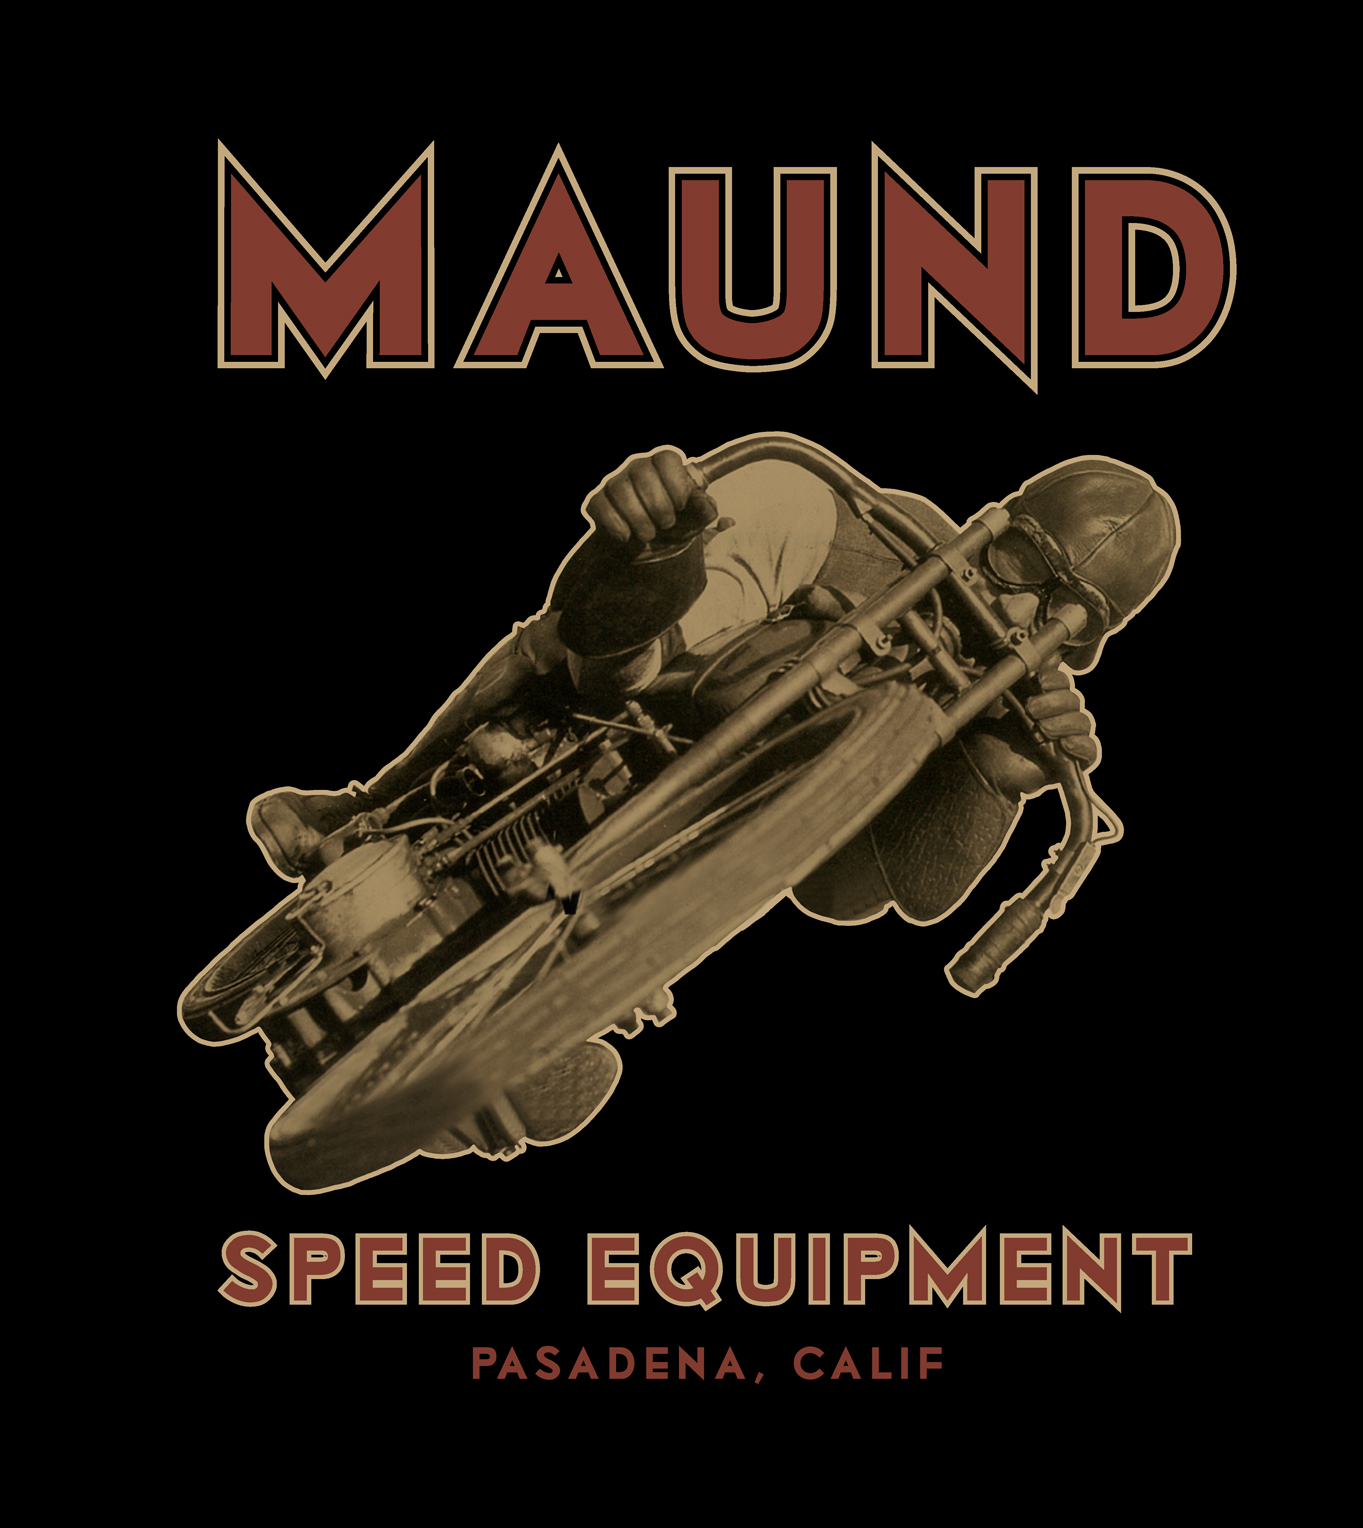 Maundspeed